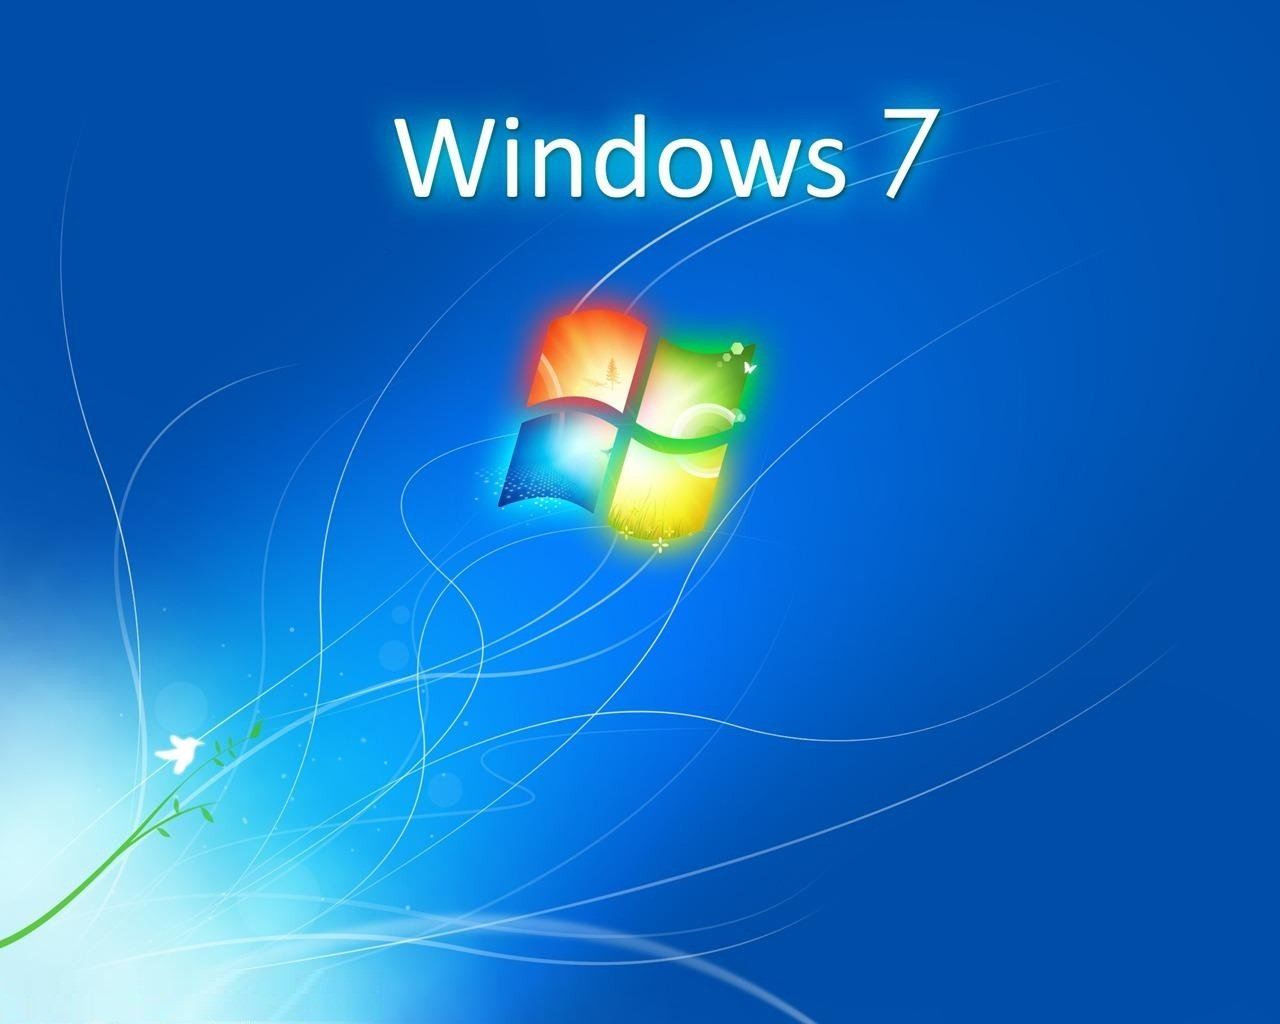 microsoft desktop backgrounds Hd microsoft desktop backgrounds 1280x1024